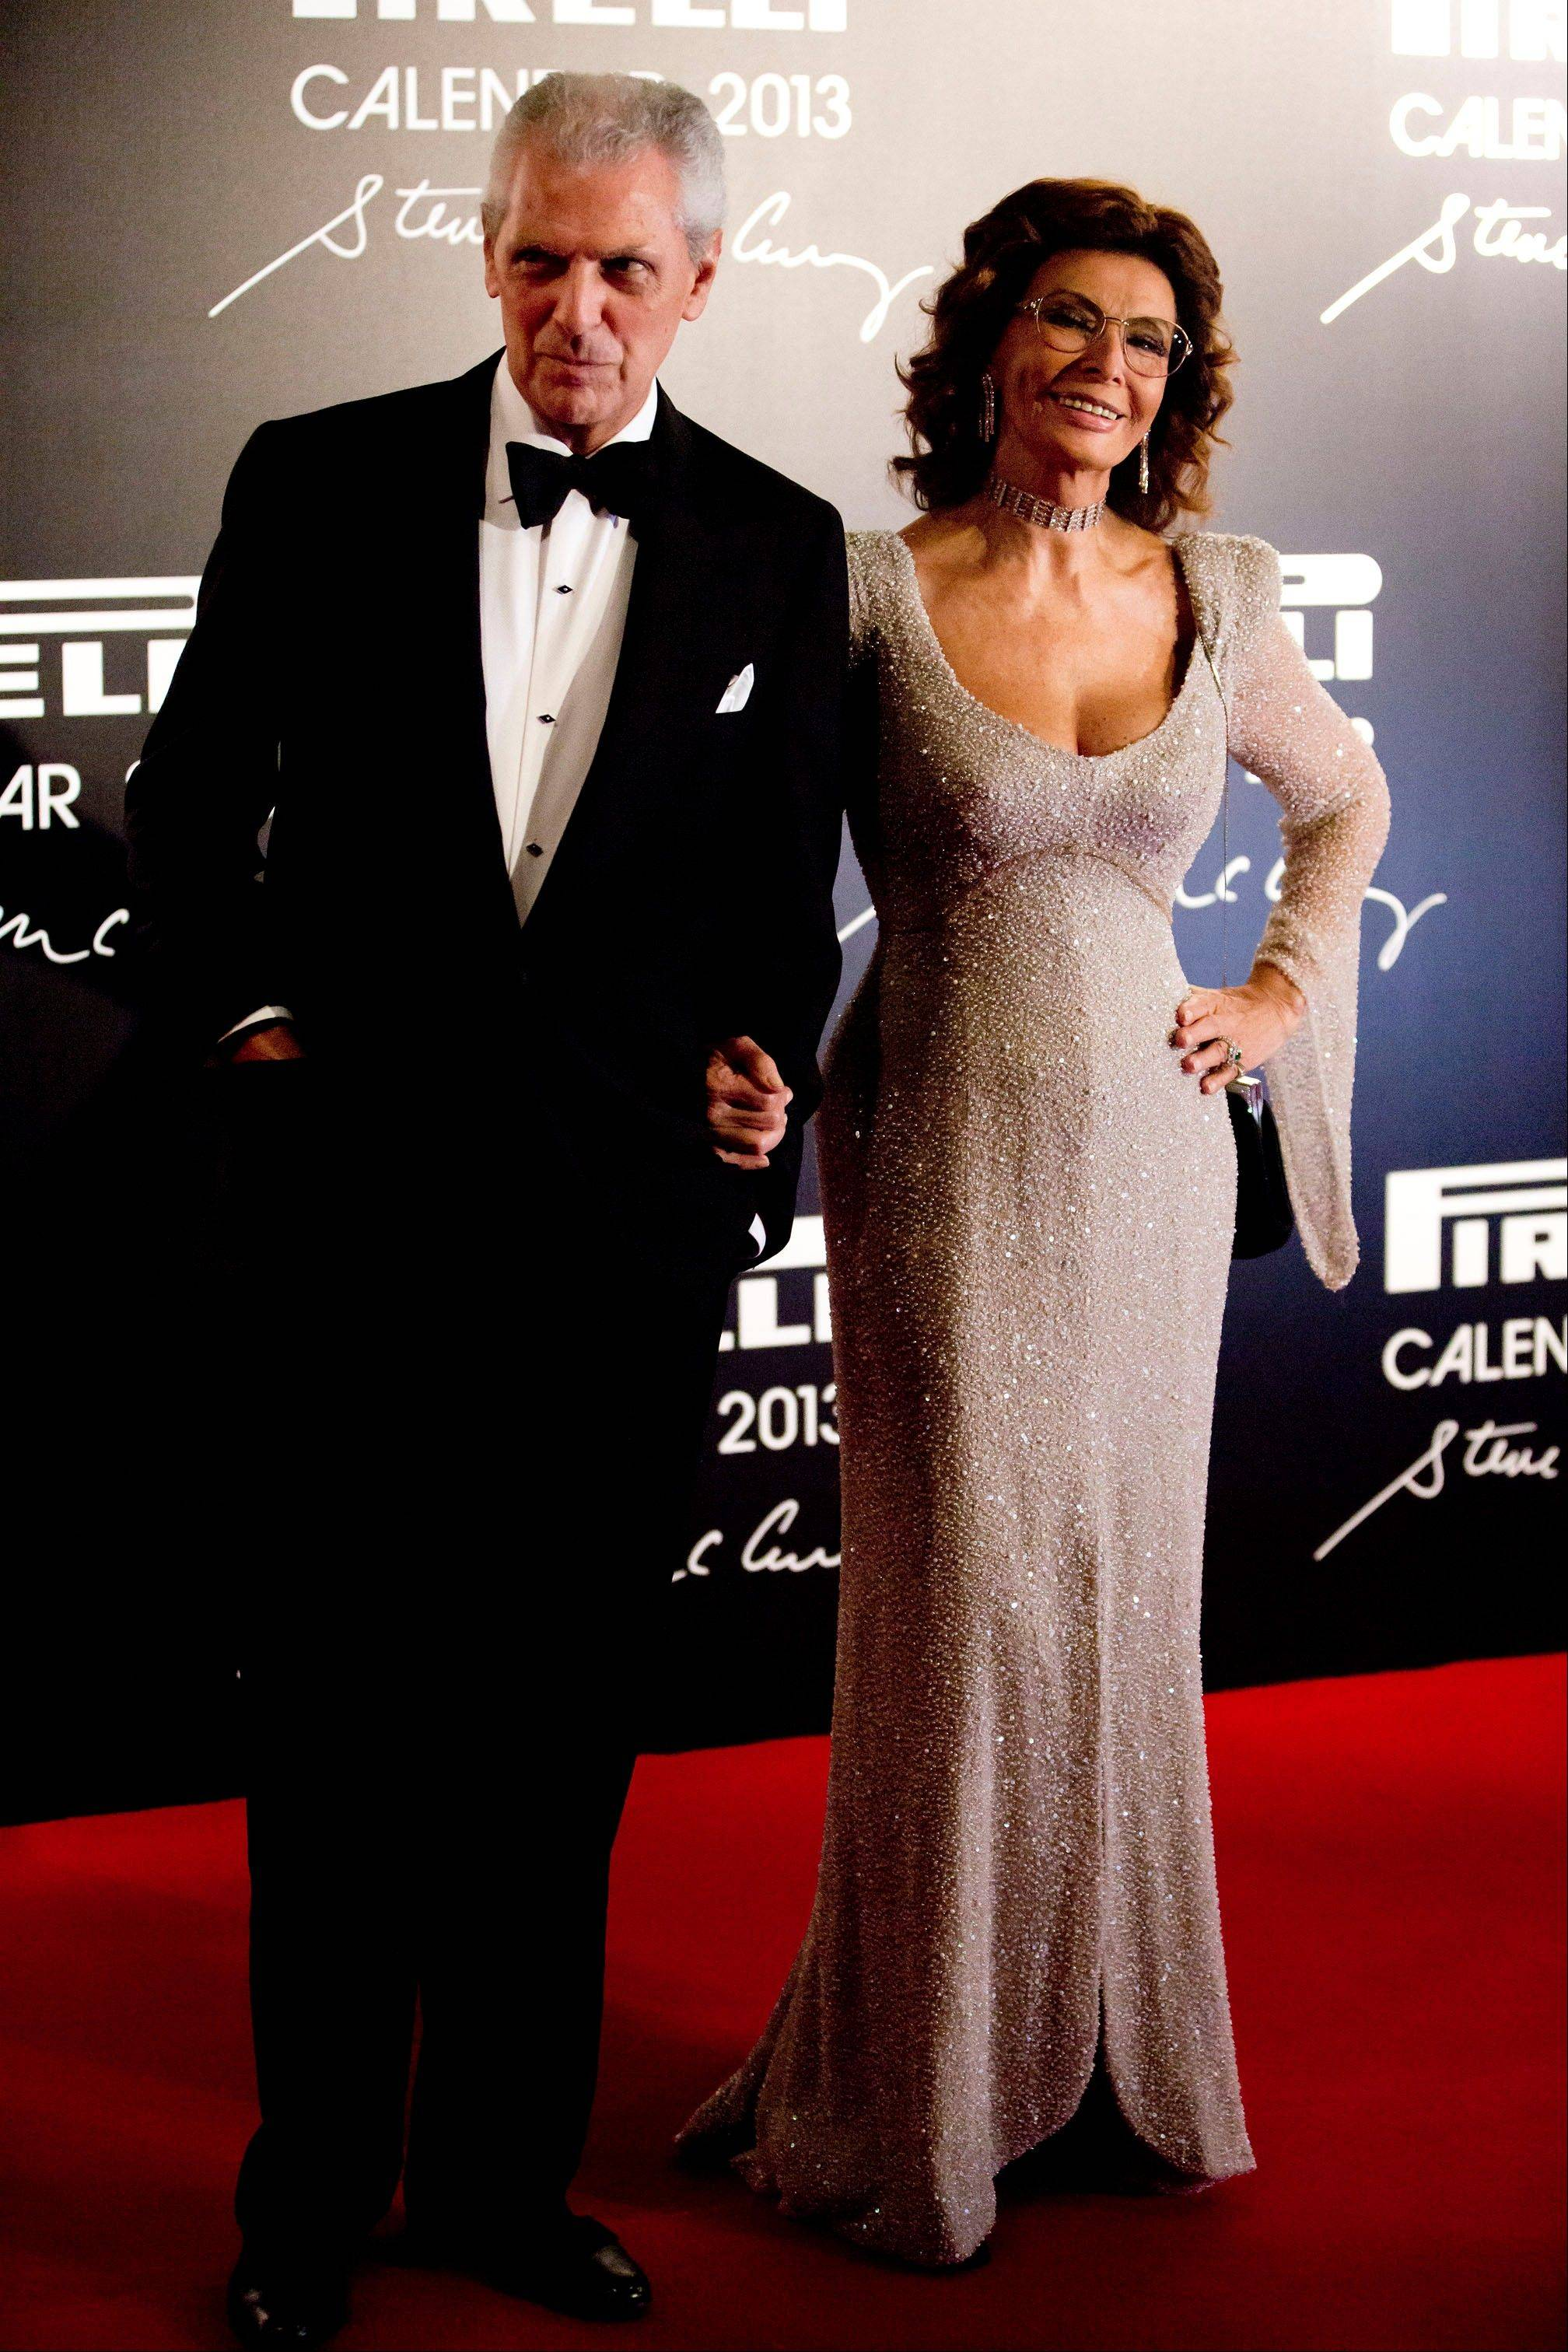 Pirelli Chairman Marco Tronchetti Provera and Italian actress Sophia Loren pose for photos at the 2013 Pirelli Calendar red carpet event in Rio de Janeiro, Brazil.